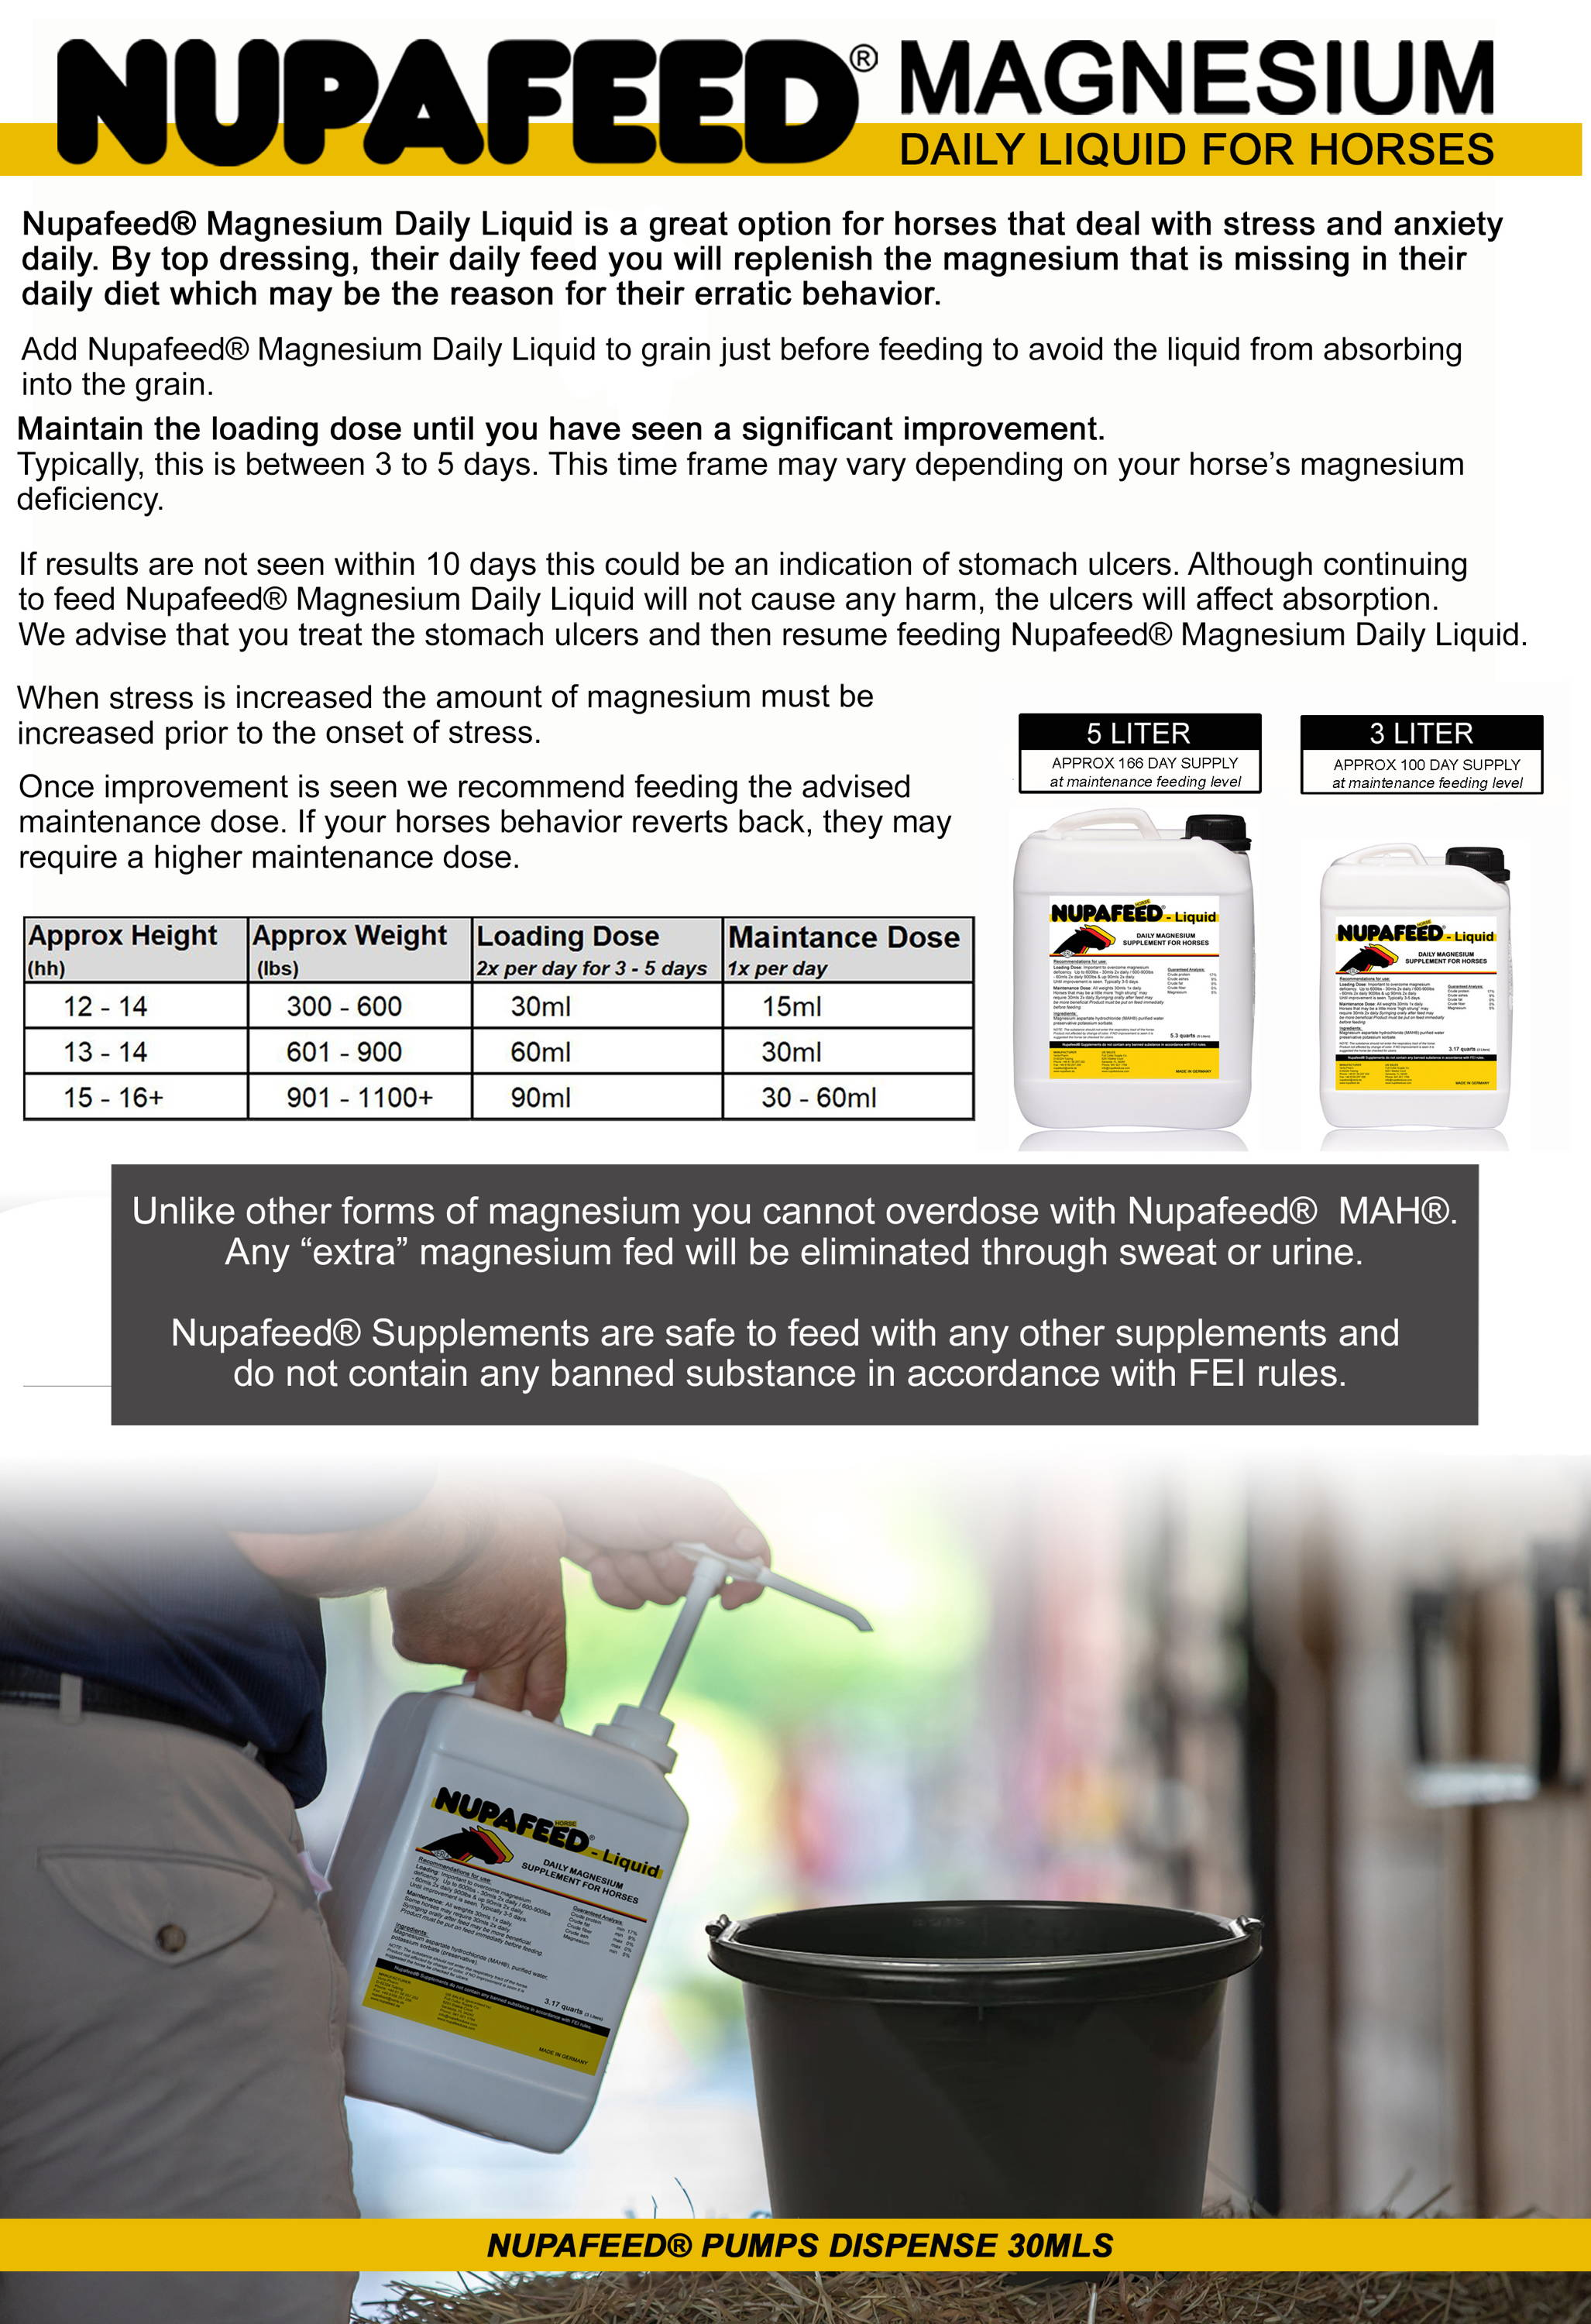 magnesium daily for horses feeding instructions